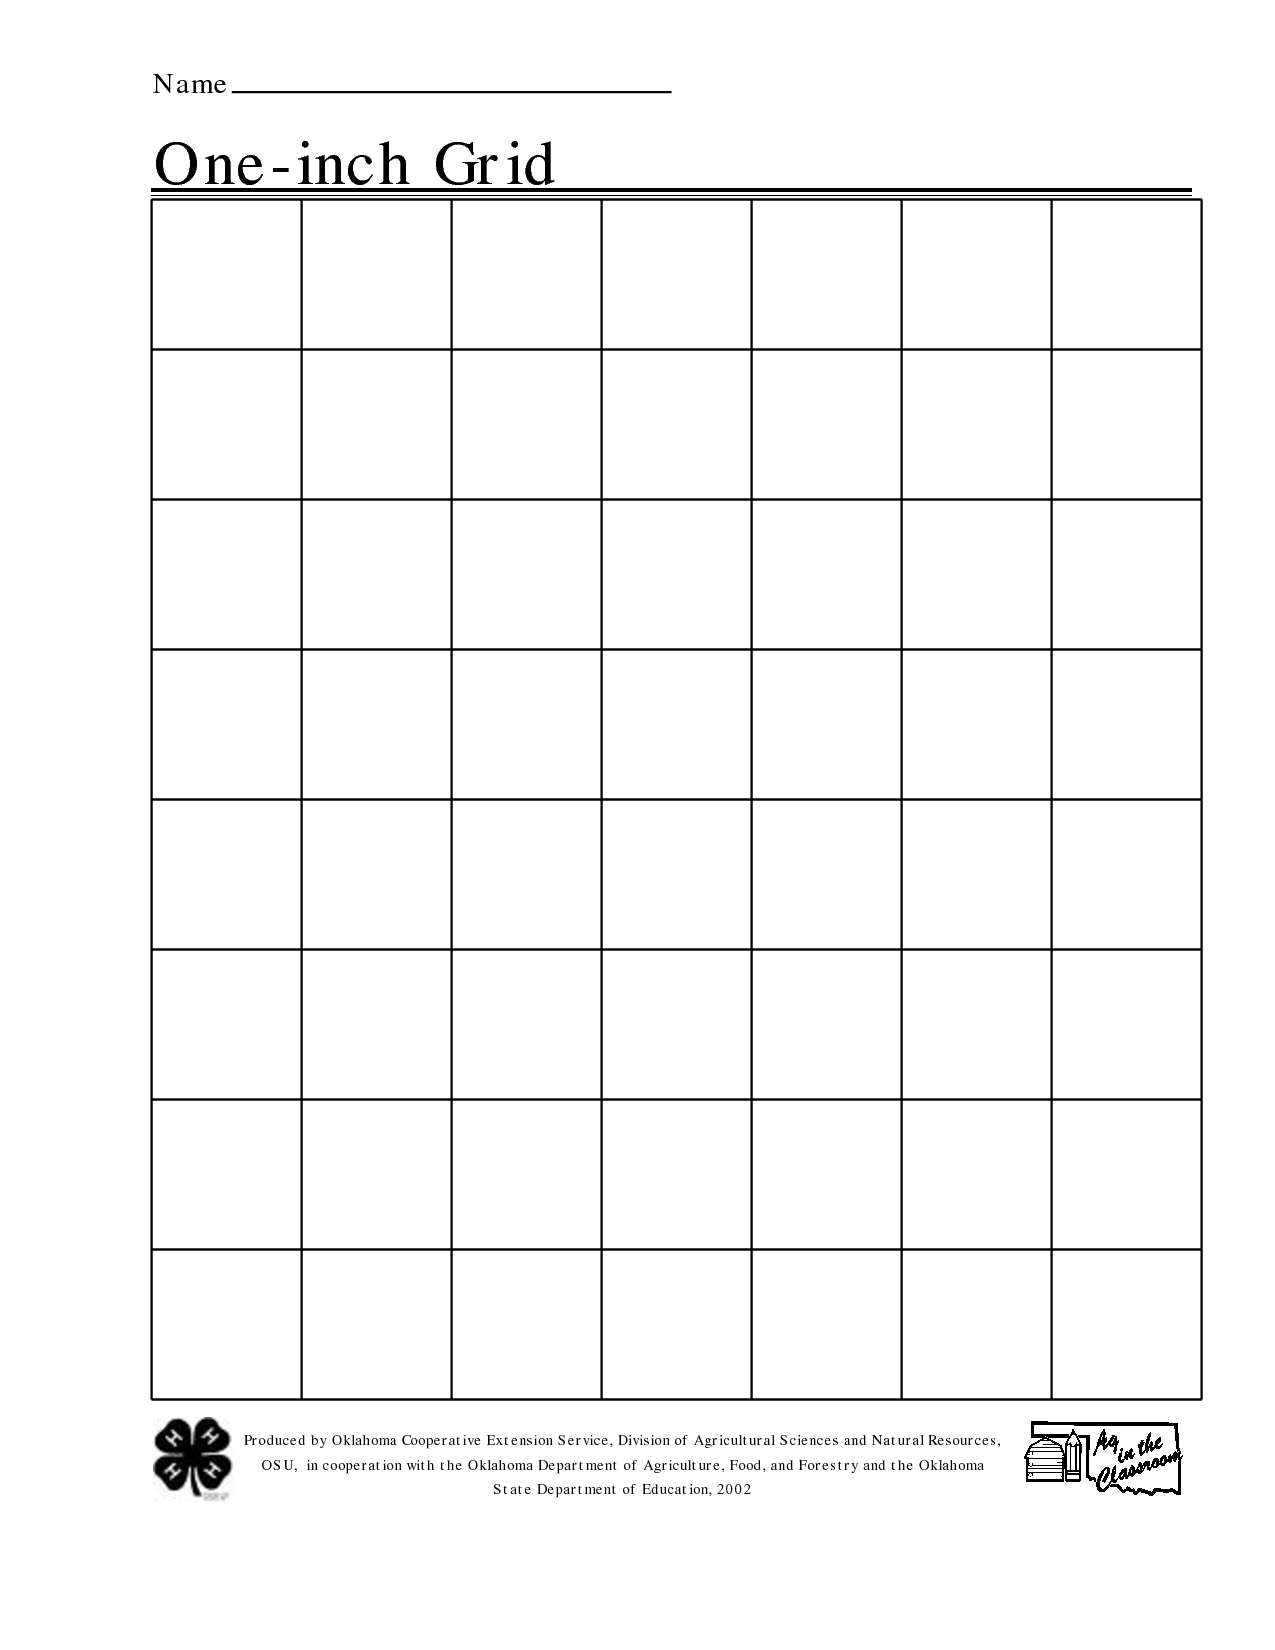 Free Printable 1 Inch Grid Paper | Math | Pinterest | Printable - Free Printable Graph Paper For Elementary Students